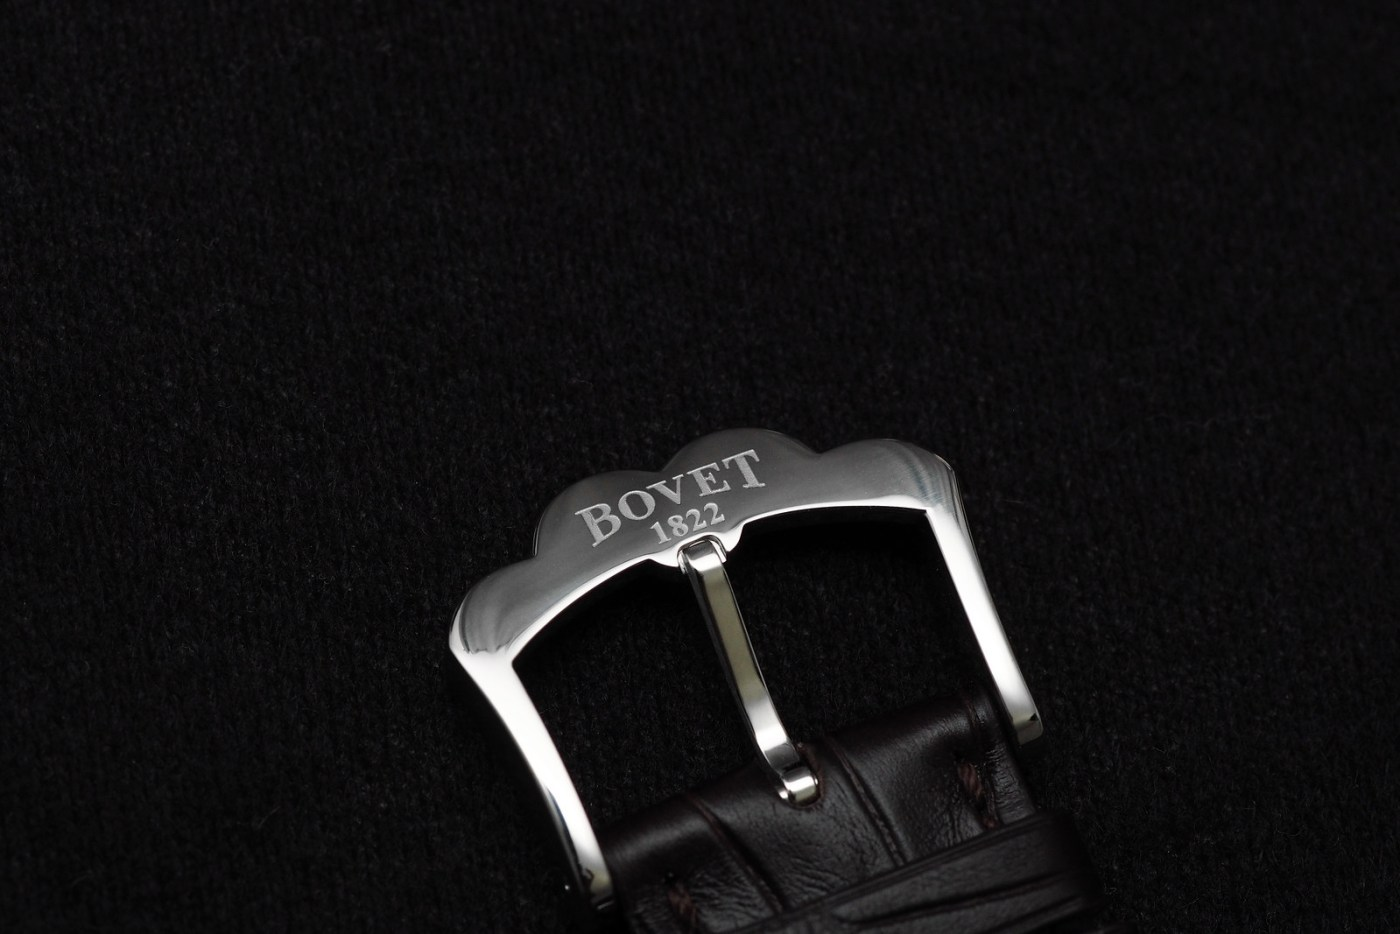 Bovet Dimier 19Thirty buckle